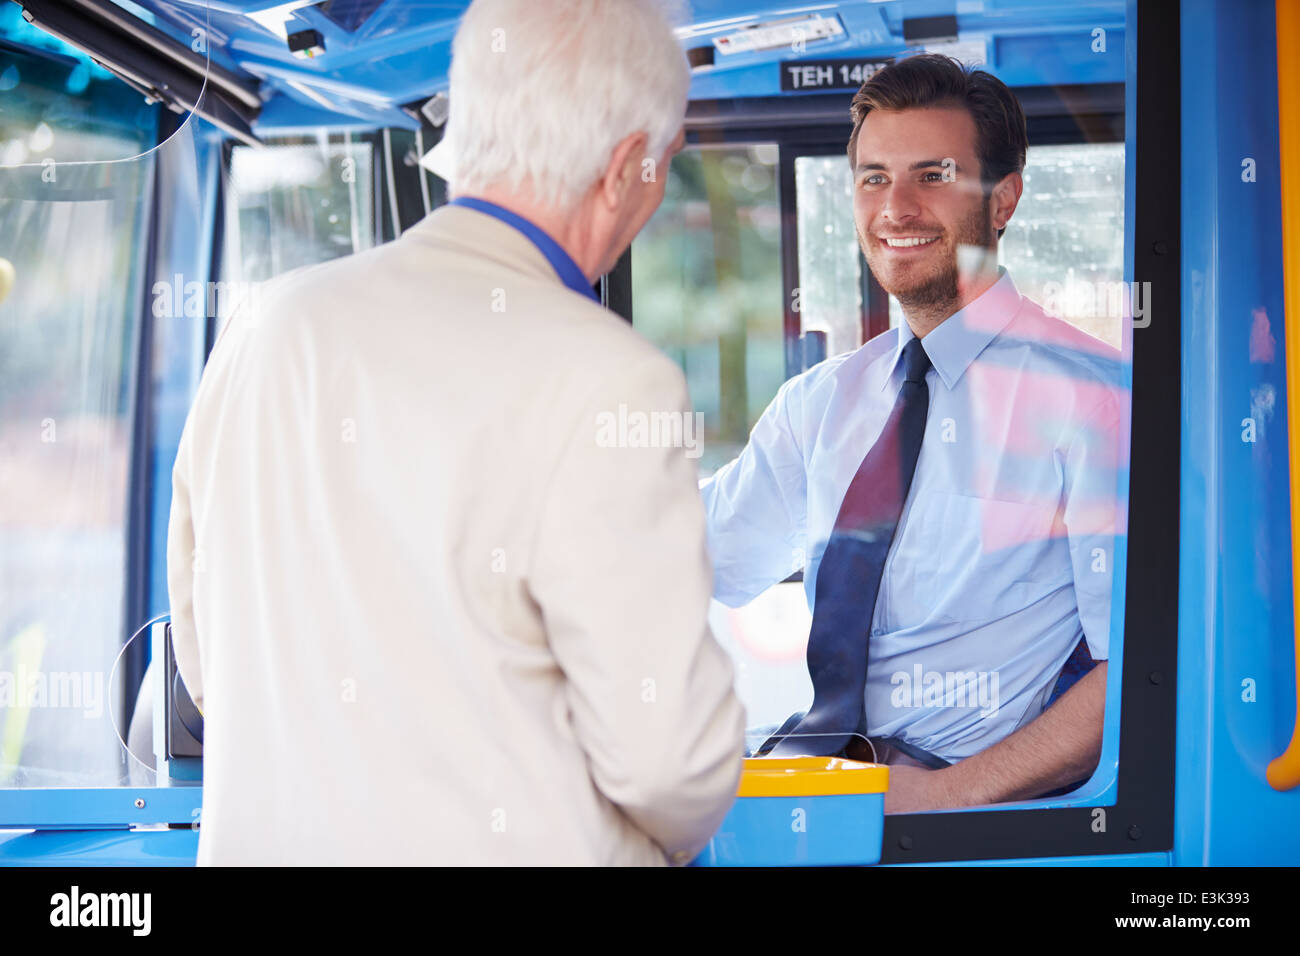 Senior Man Boarding Bus And Buying Ticket - Stock Image